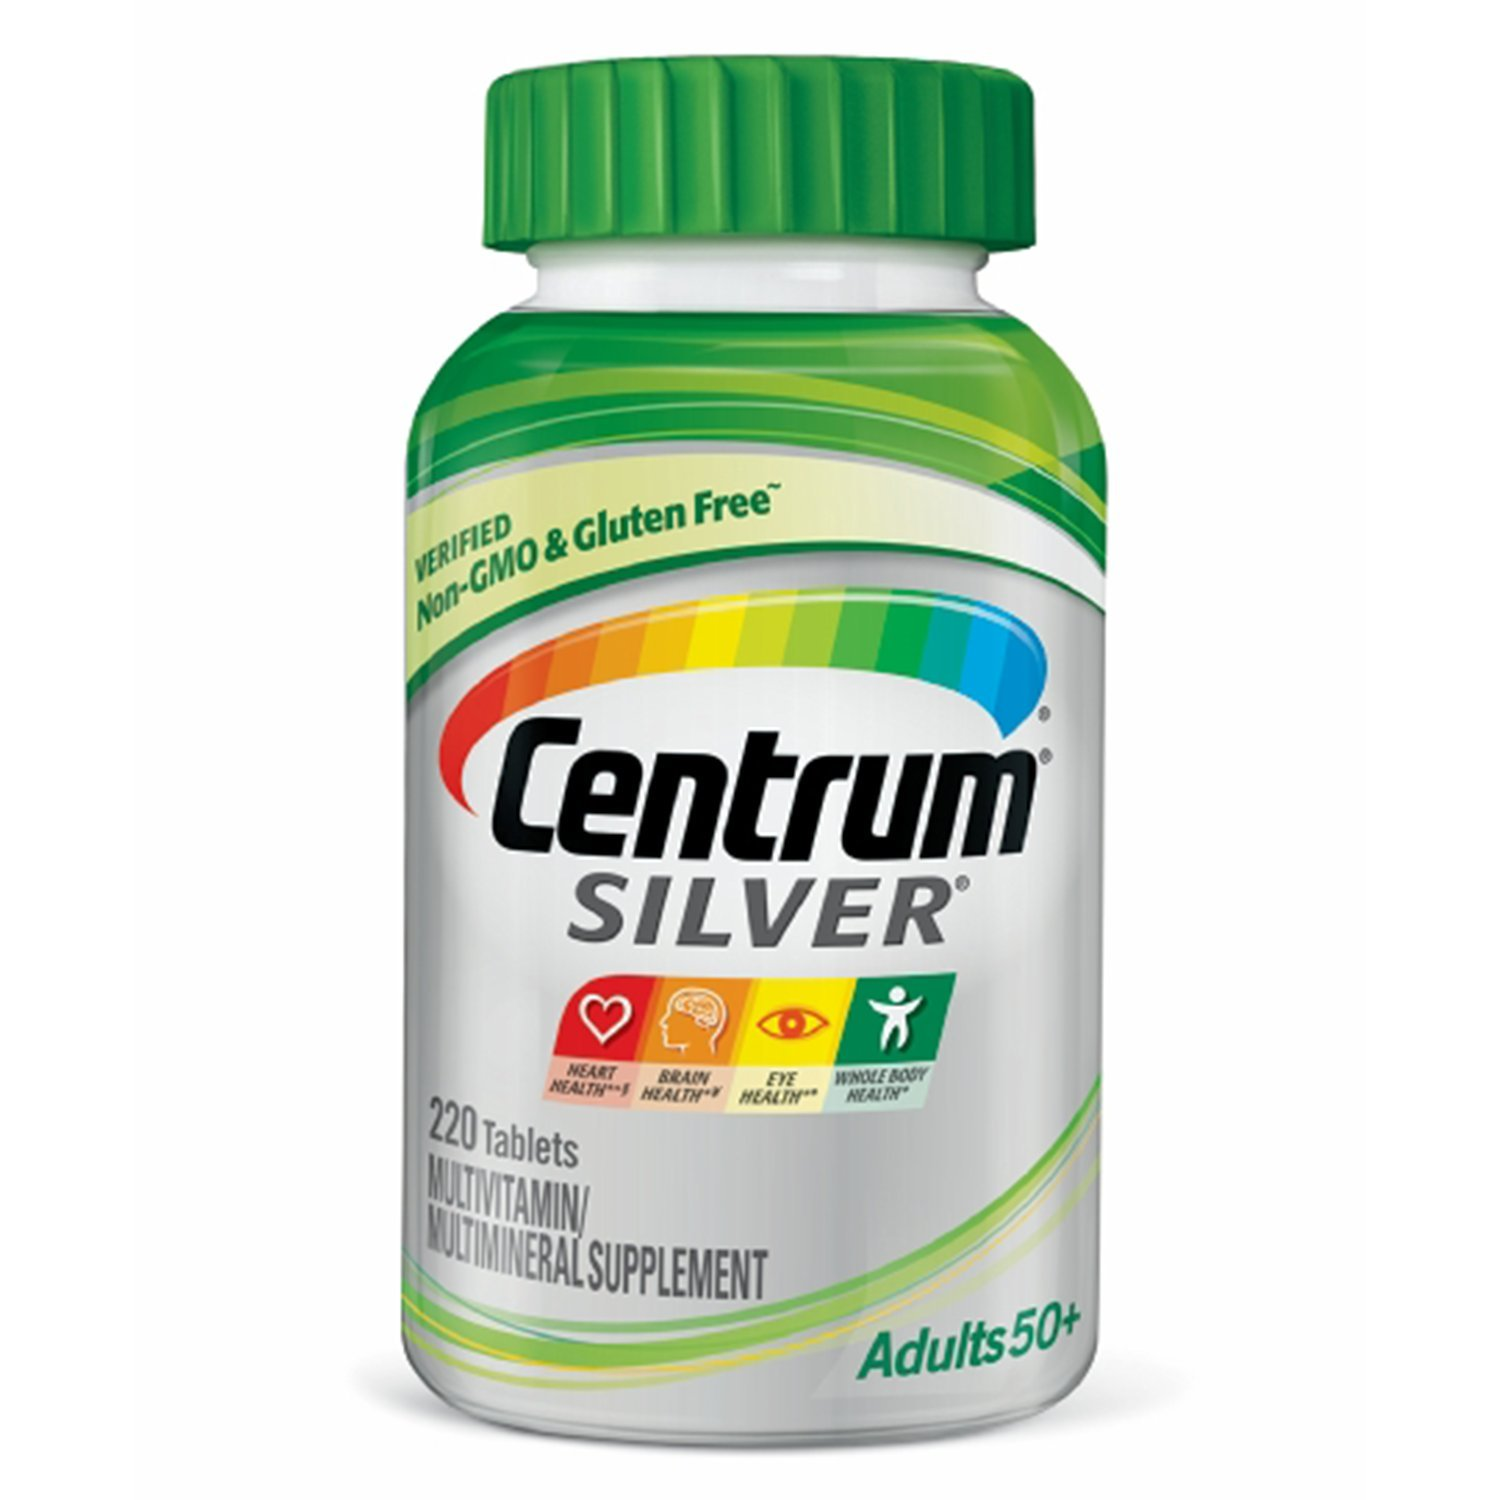 With Centrum silver vitamins